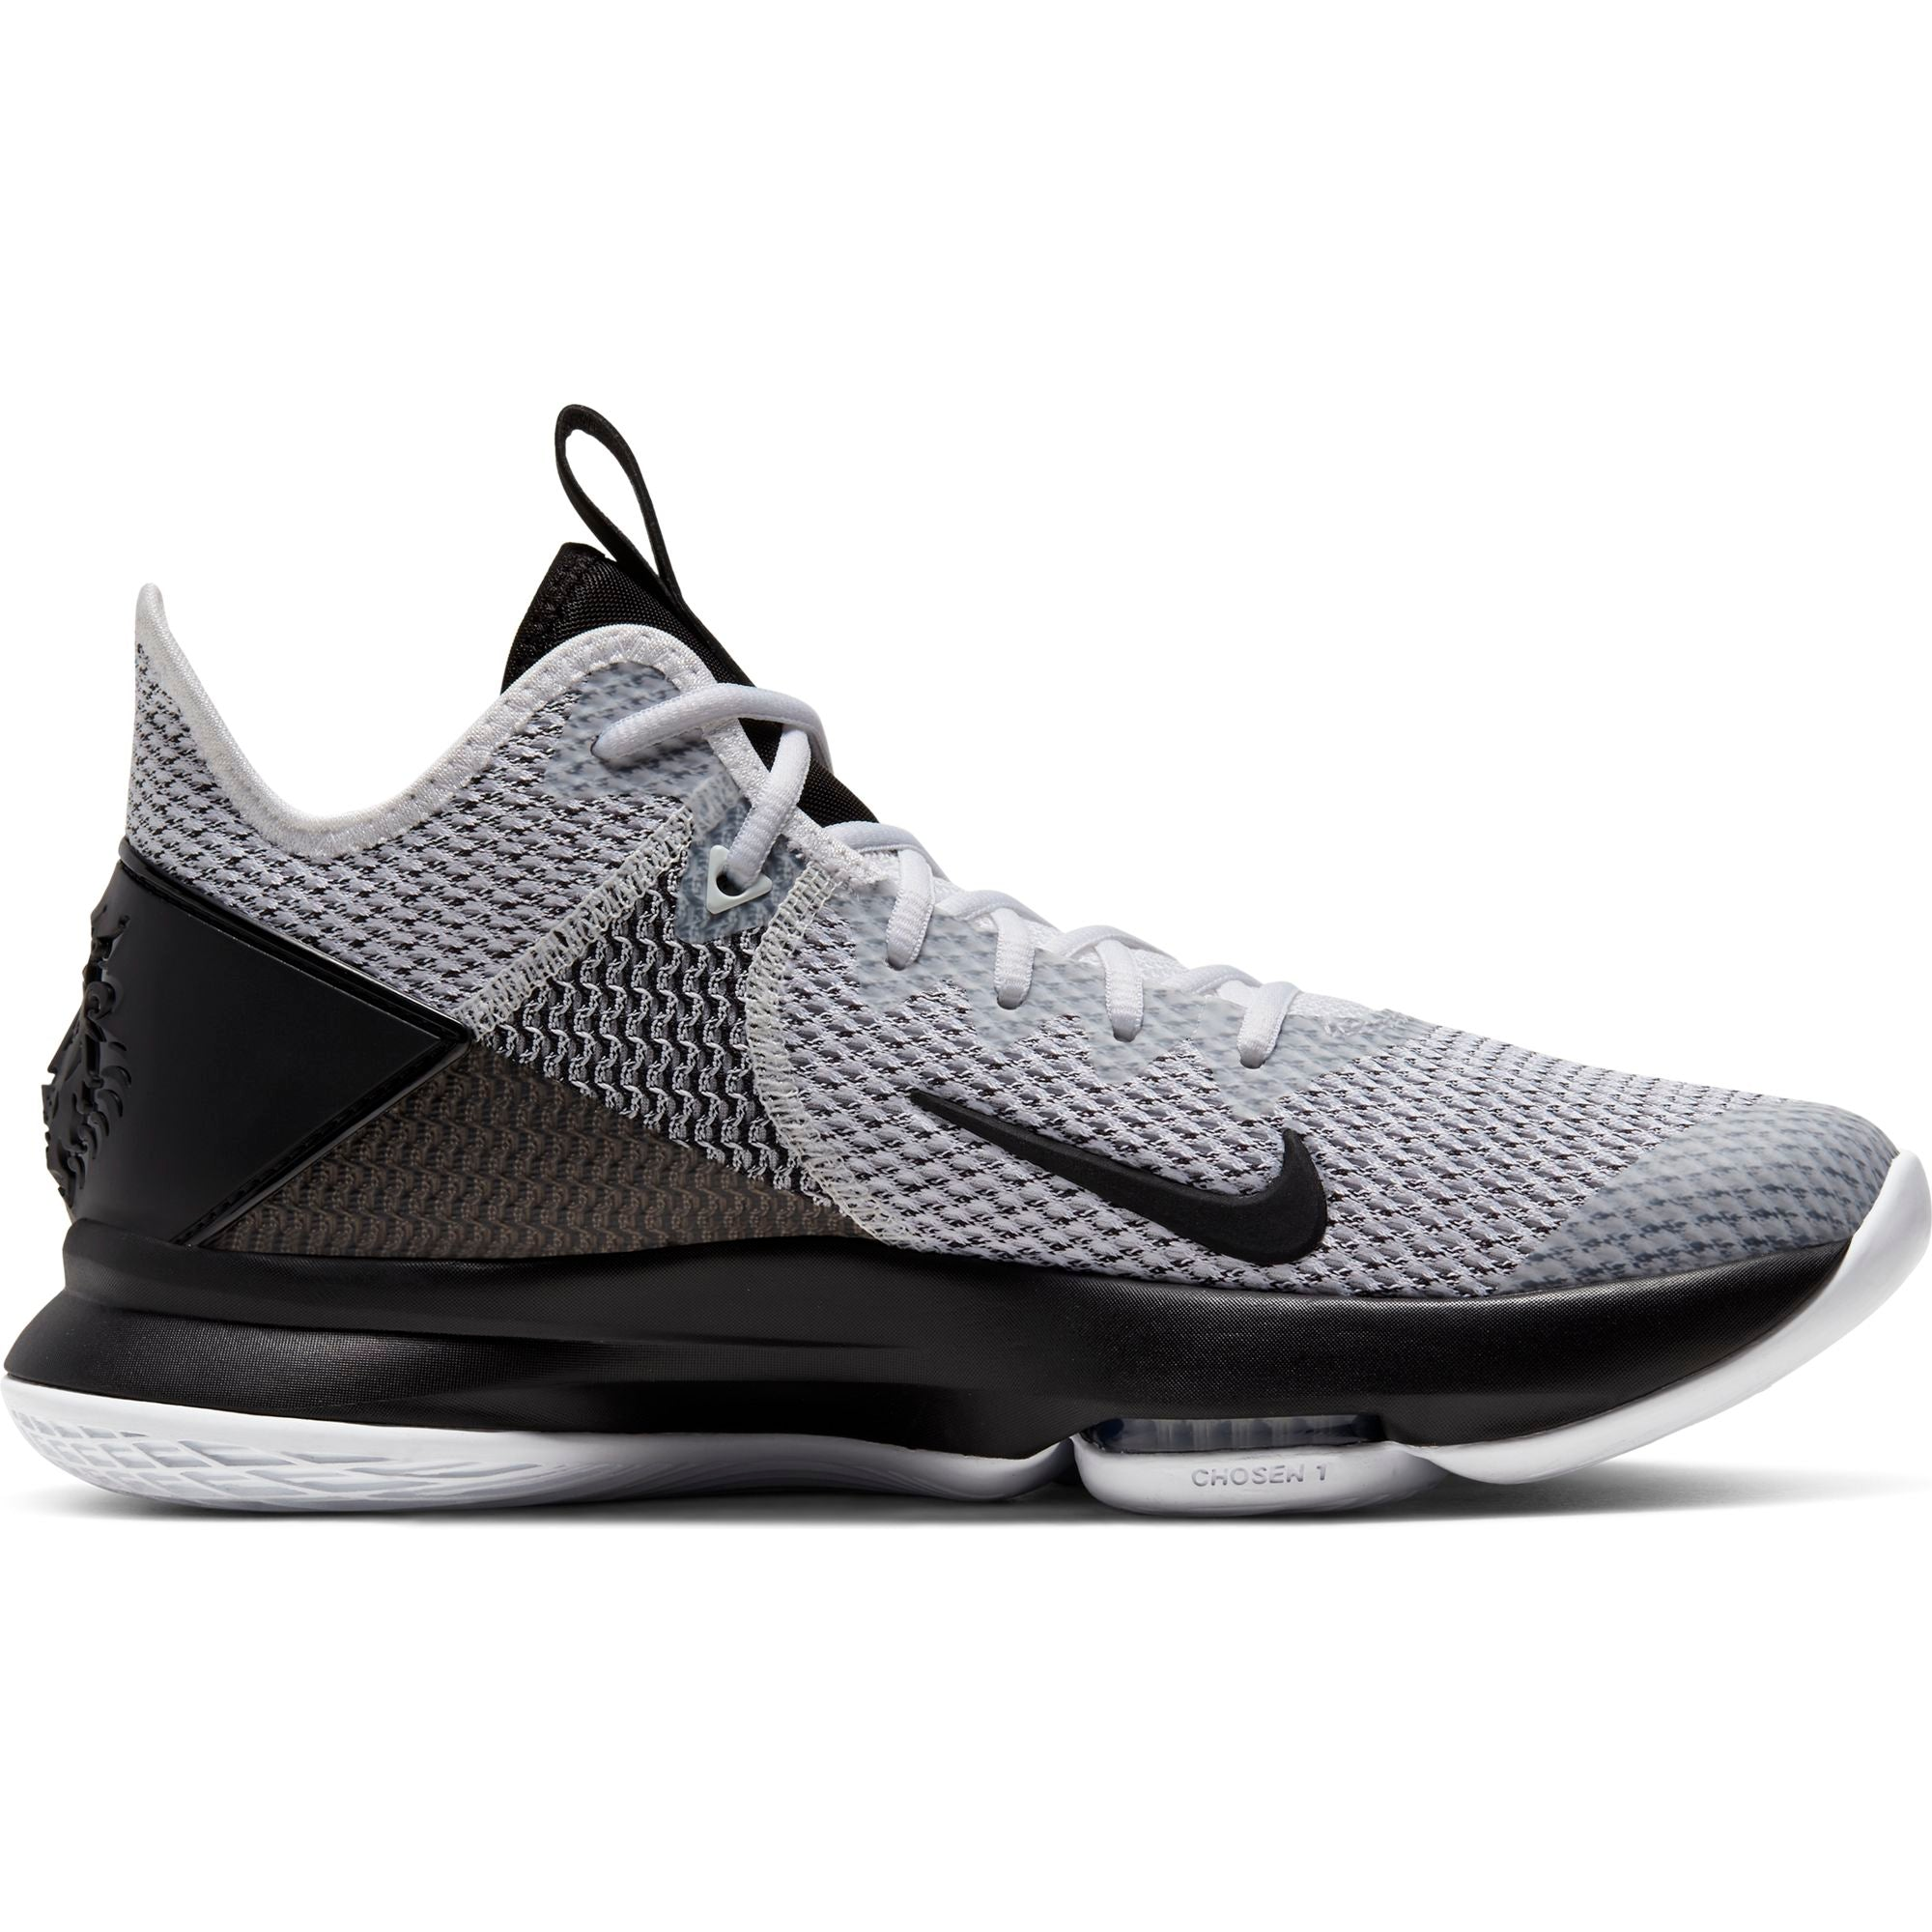 Nike Lebron Witness 4 Basketball Boot/shoe - White/Black